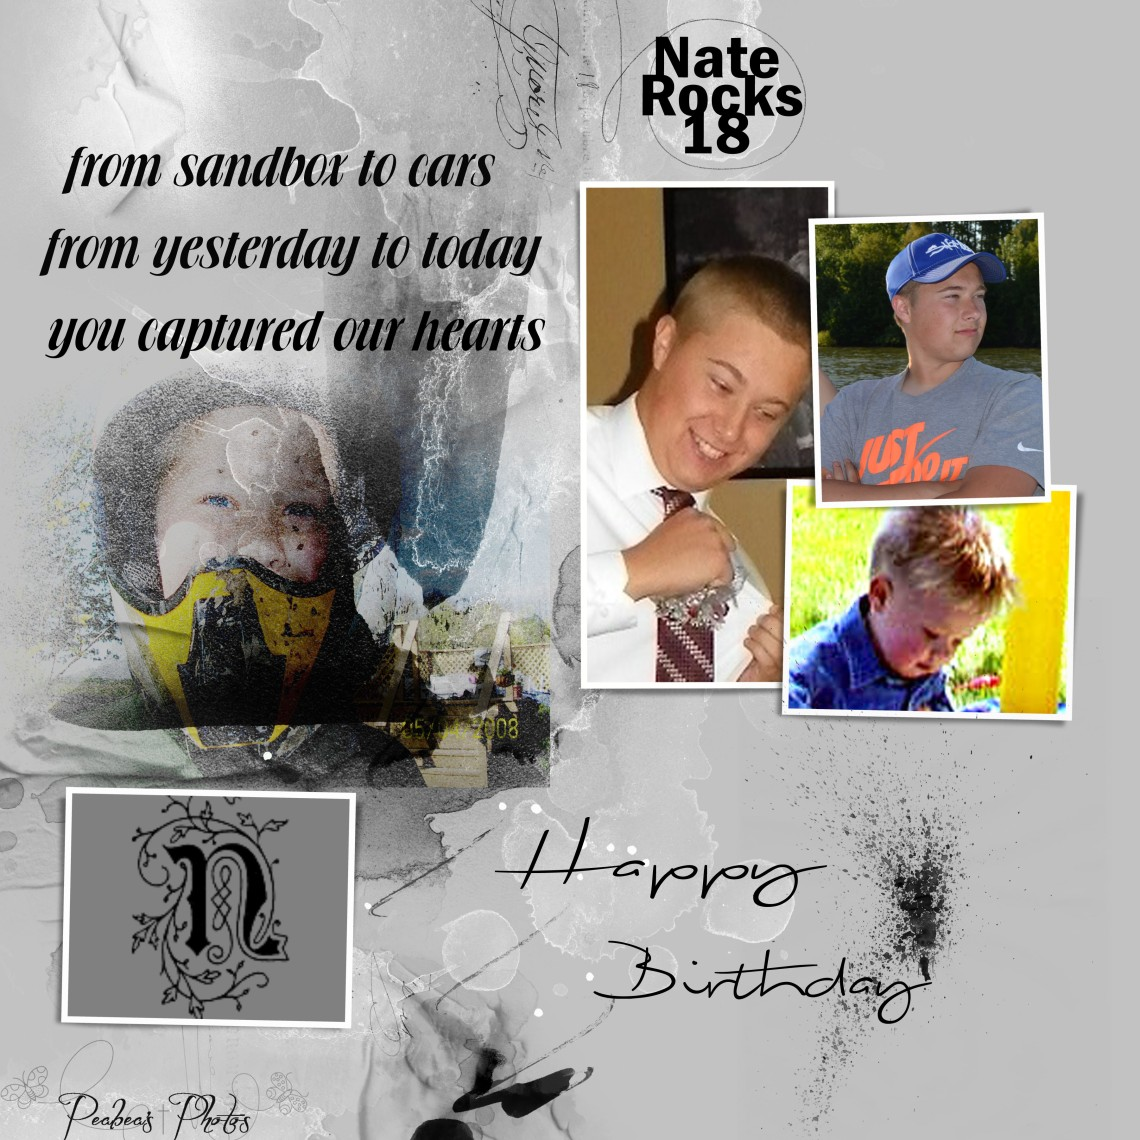 Nate 18 bday for FB